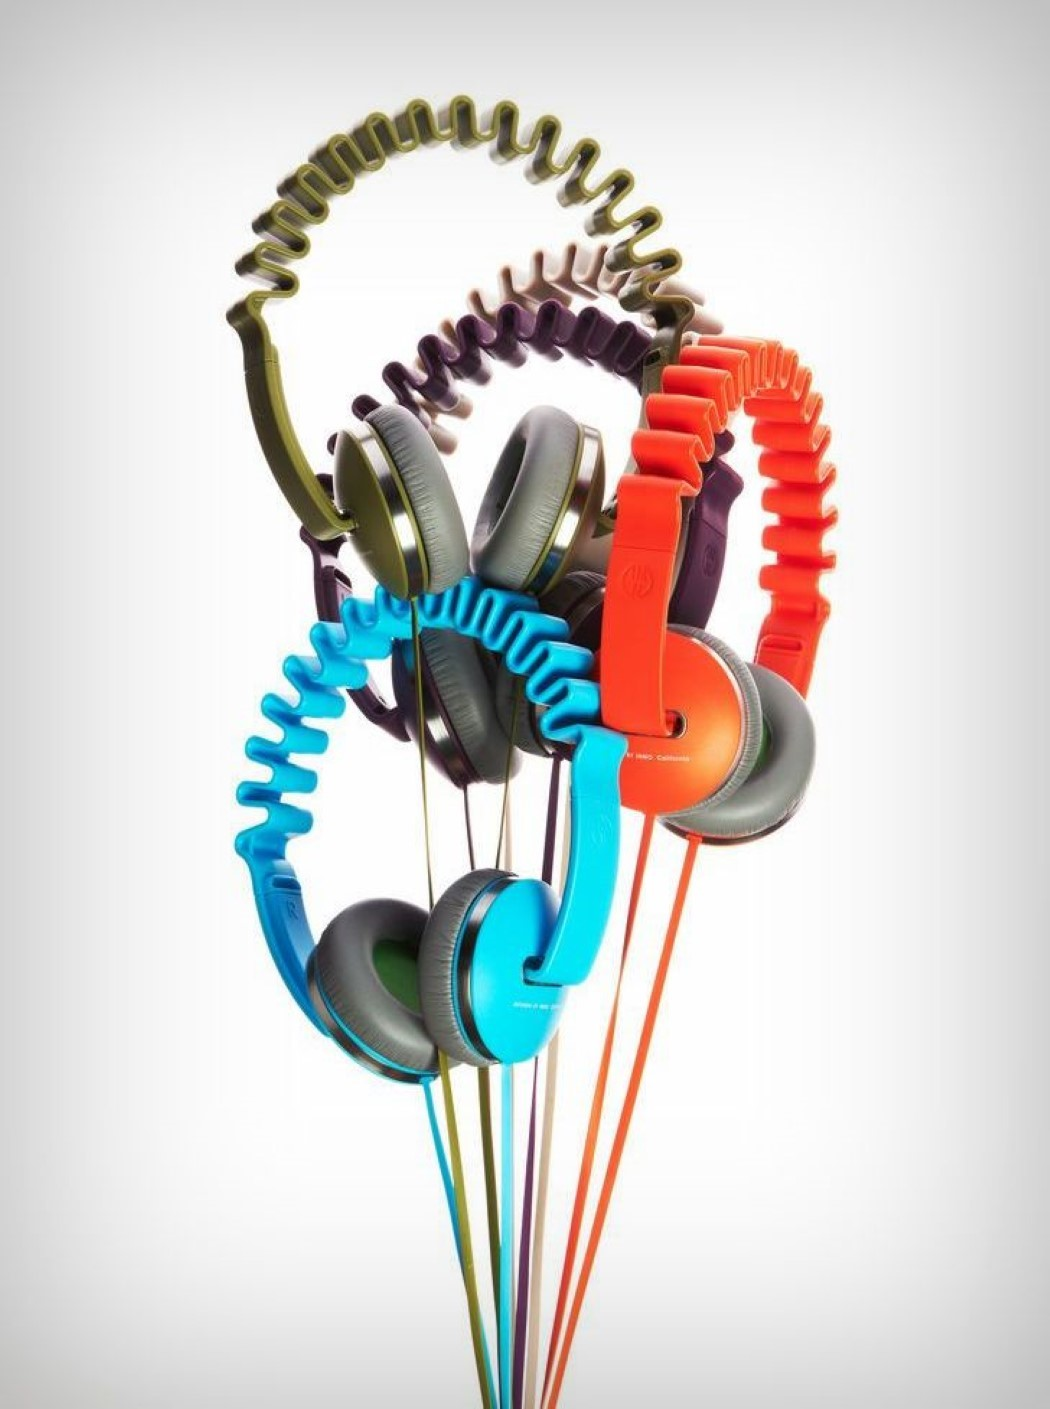 innowave_headphones_6